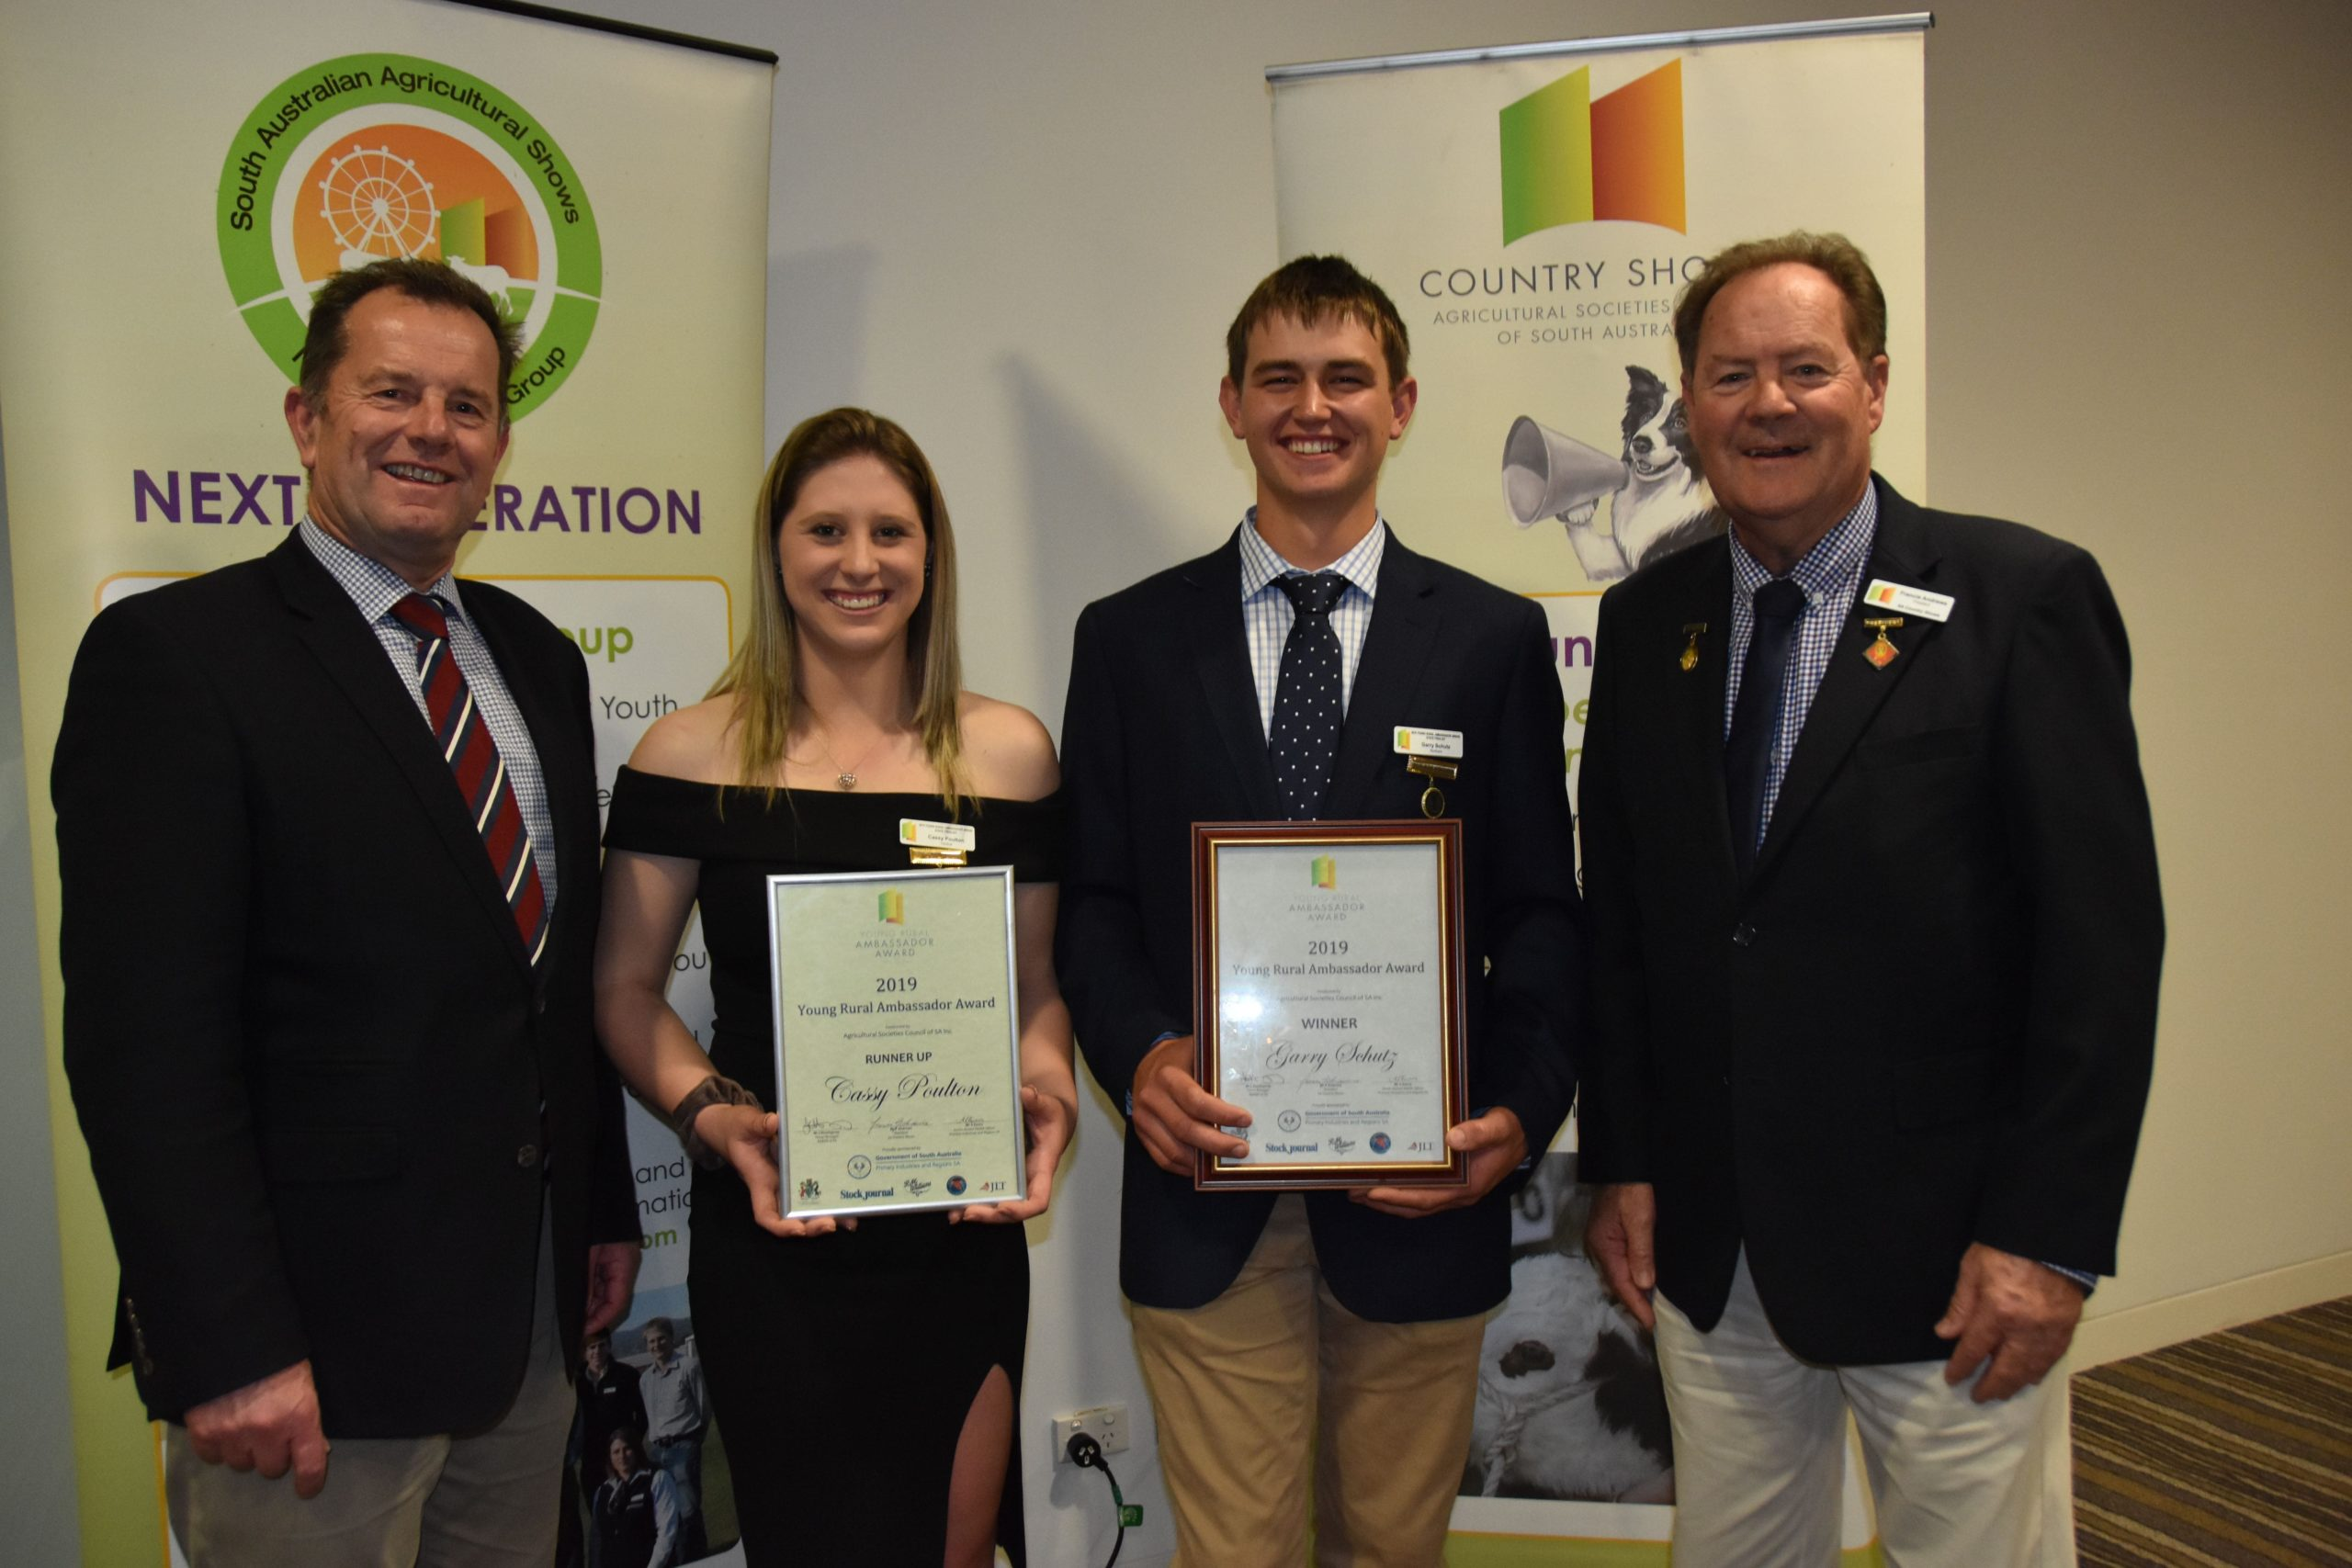 2019 Young Rural Ambassador Award winner & runner up